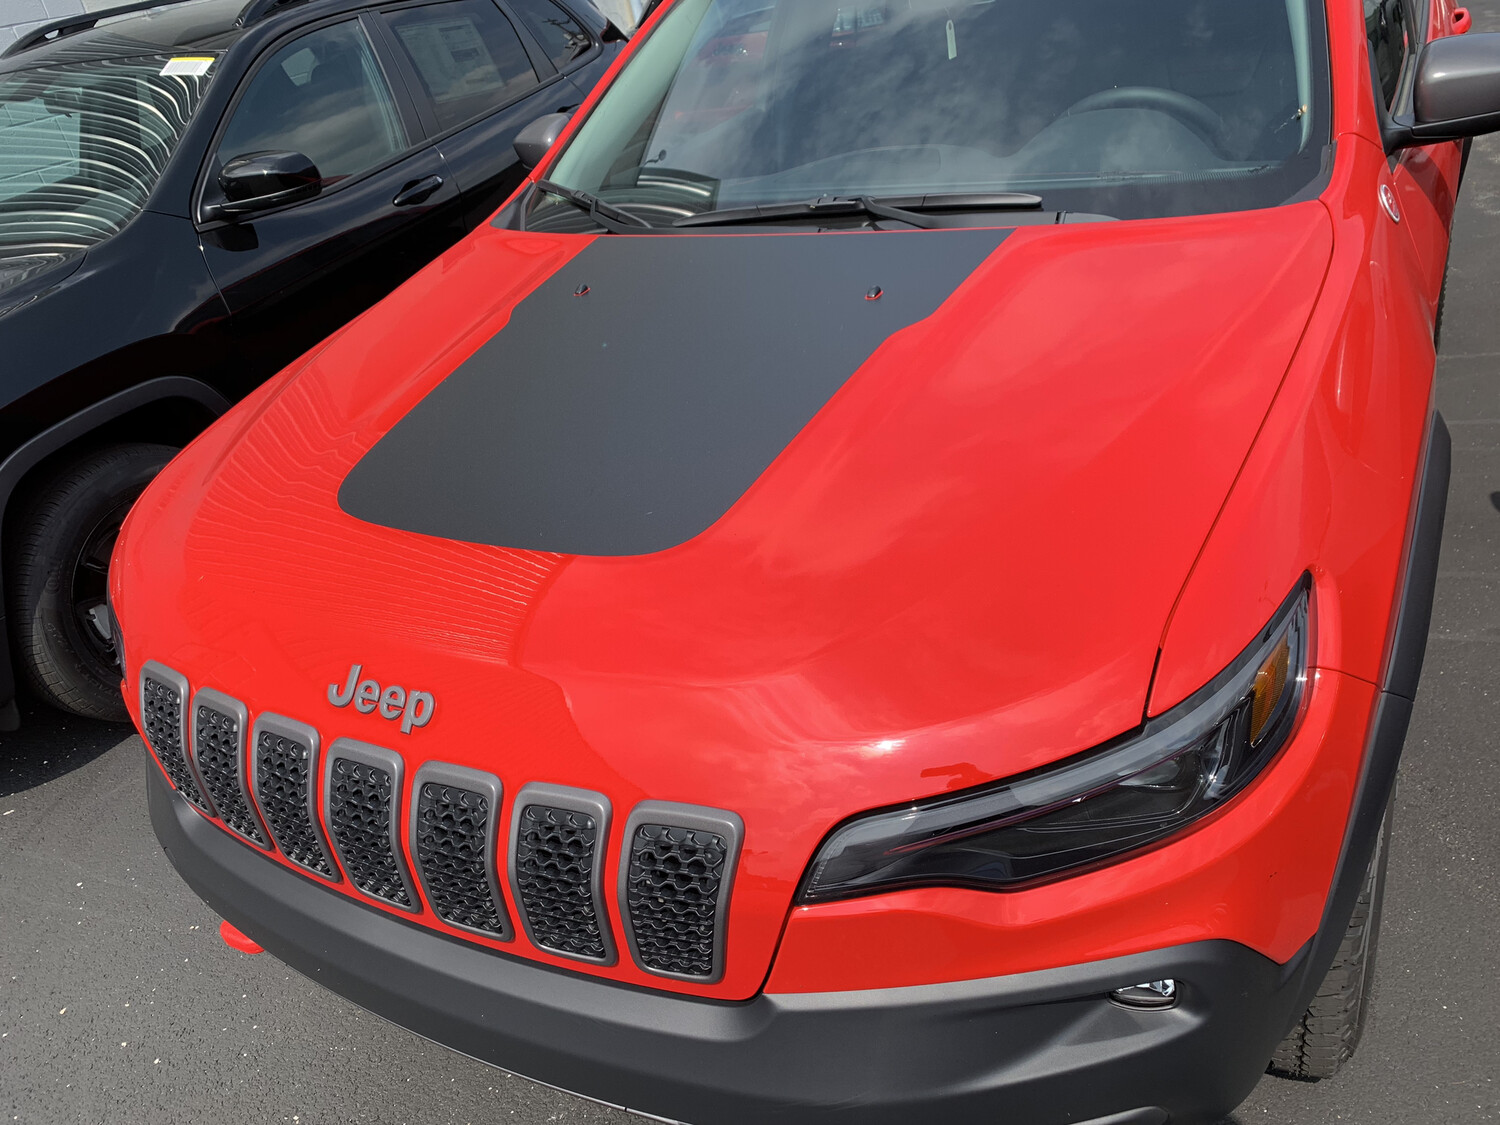 2019 - Up Jeep Cherokee Trailhawk Style Hood Blackout Vinyl Graphic Decals (2019 Factory Style)